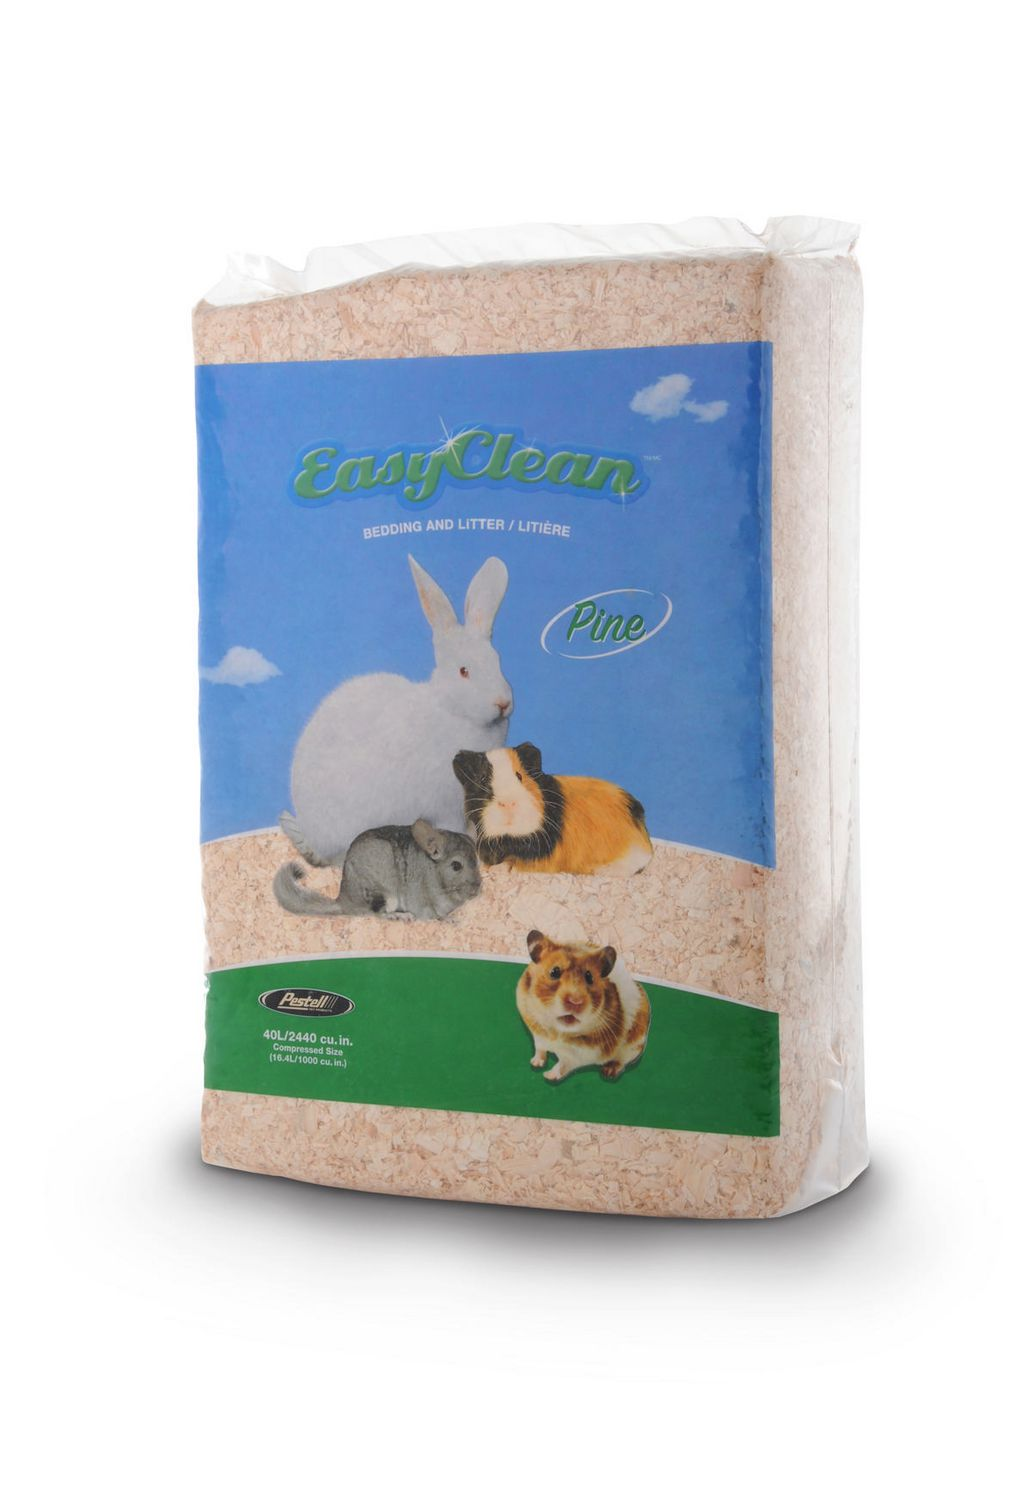 Pestell Easy Clean Pine Bedding & Litter   20L/2420 cu.in.